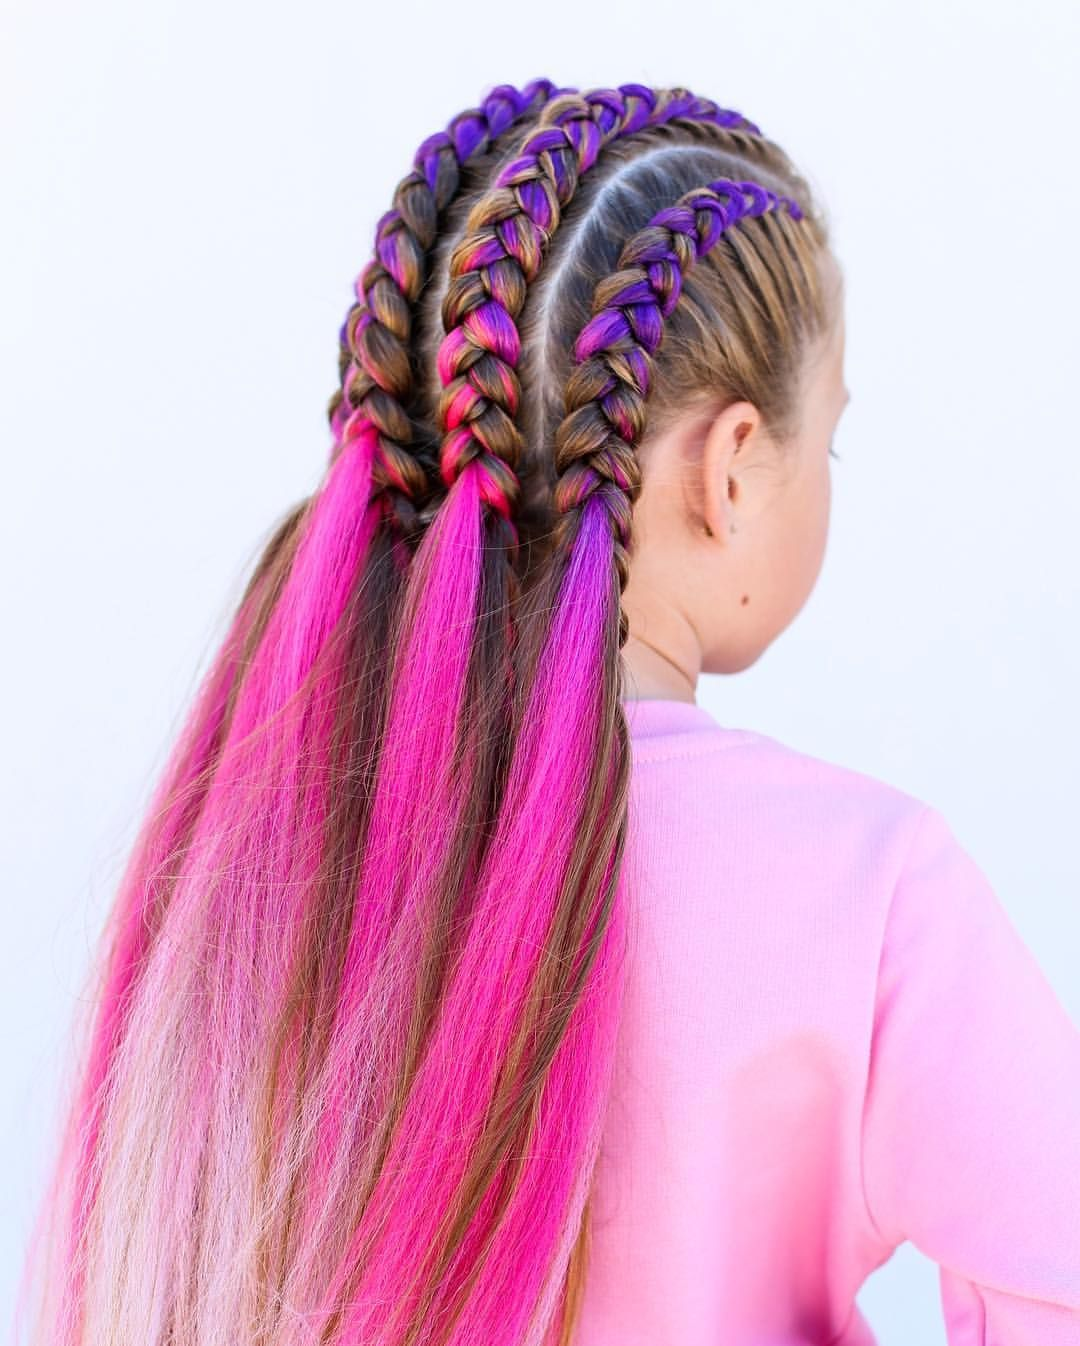 We Found An Amazing Braiding Hair Company Magicmaneshair They Sell Bright Braiding Hair An Braid In Hair Extensions Braided Hairstyles Braids With Extensions